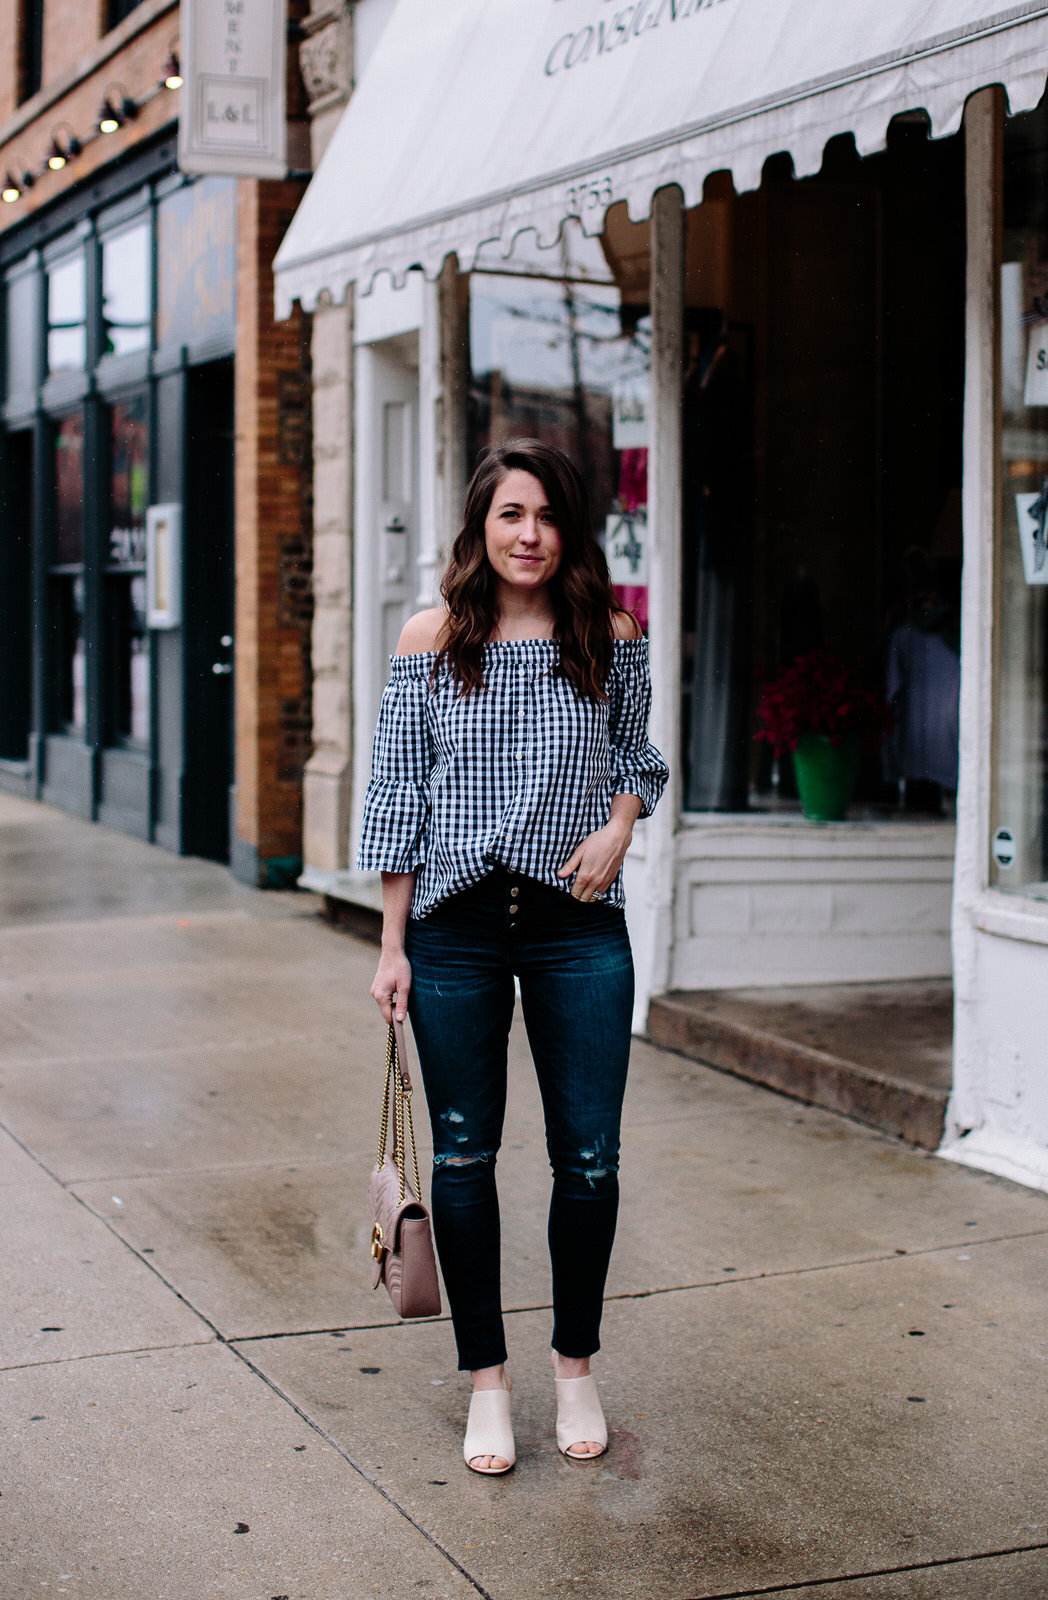 gingham top for spring (1 of 8)-1